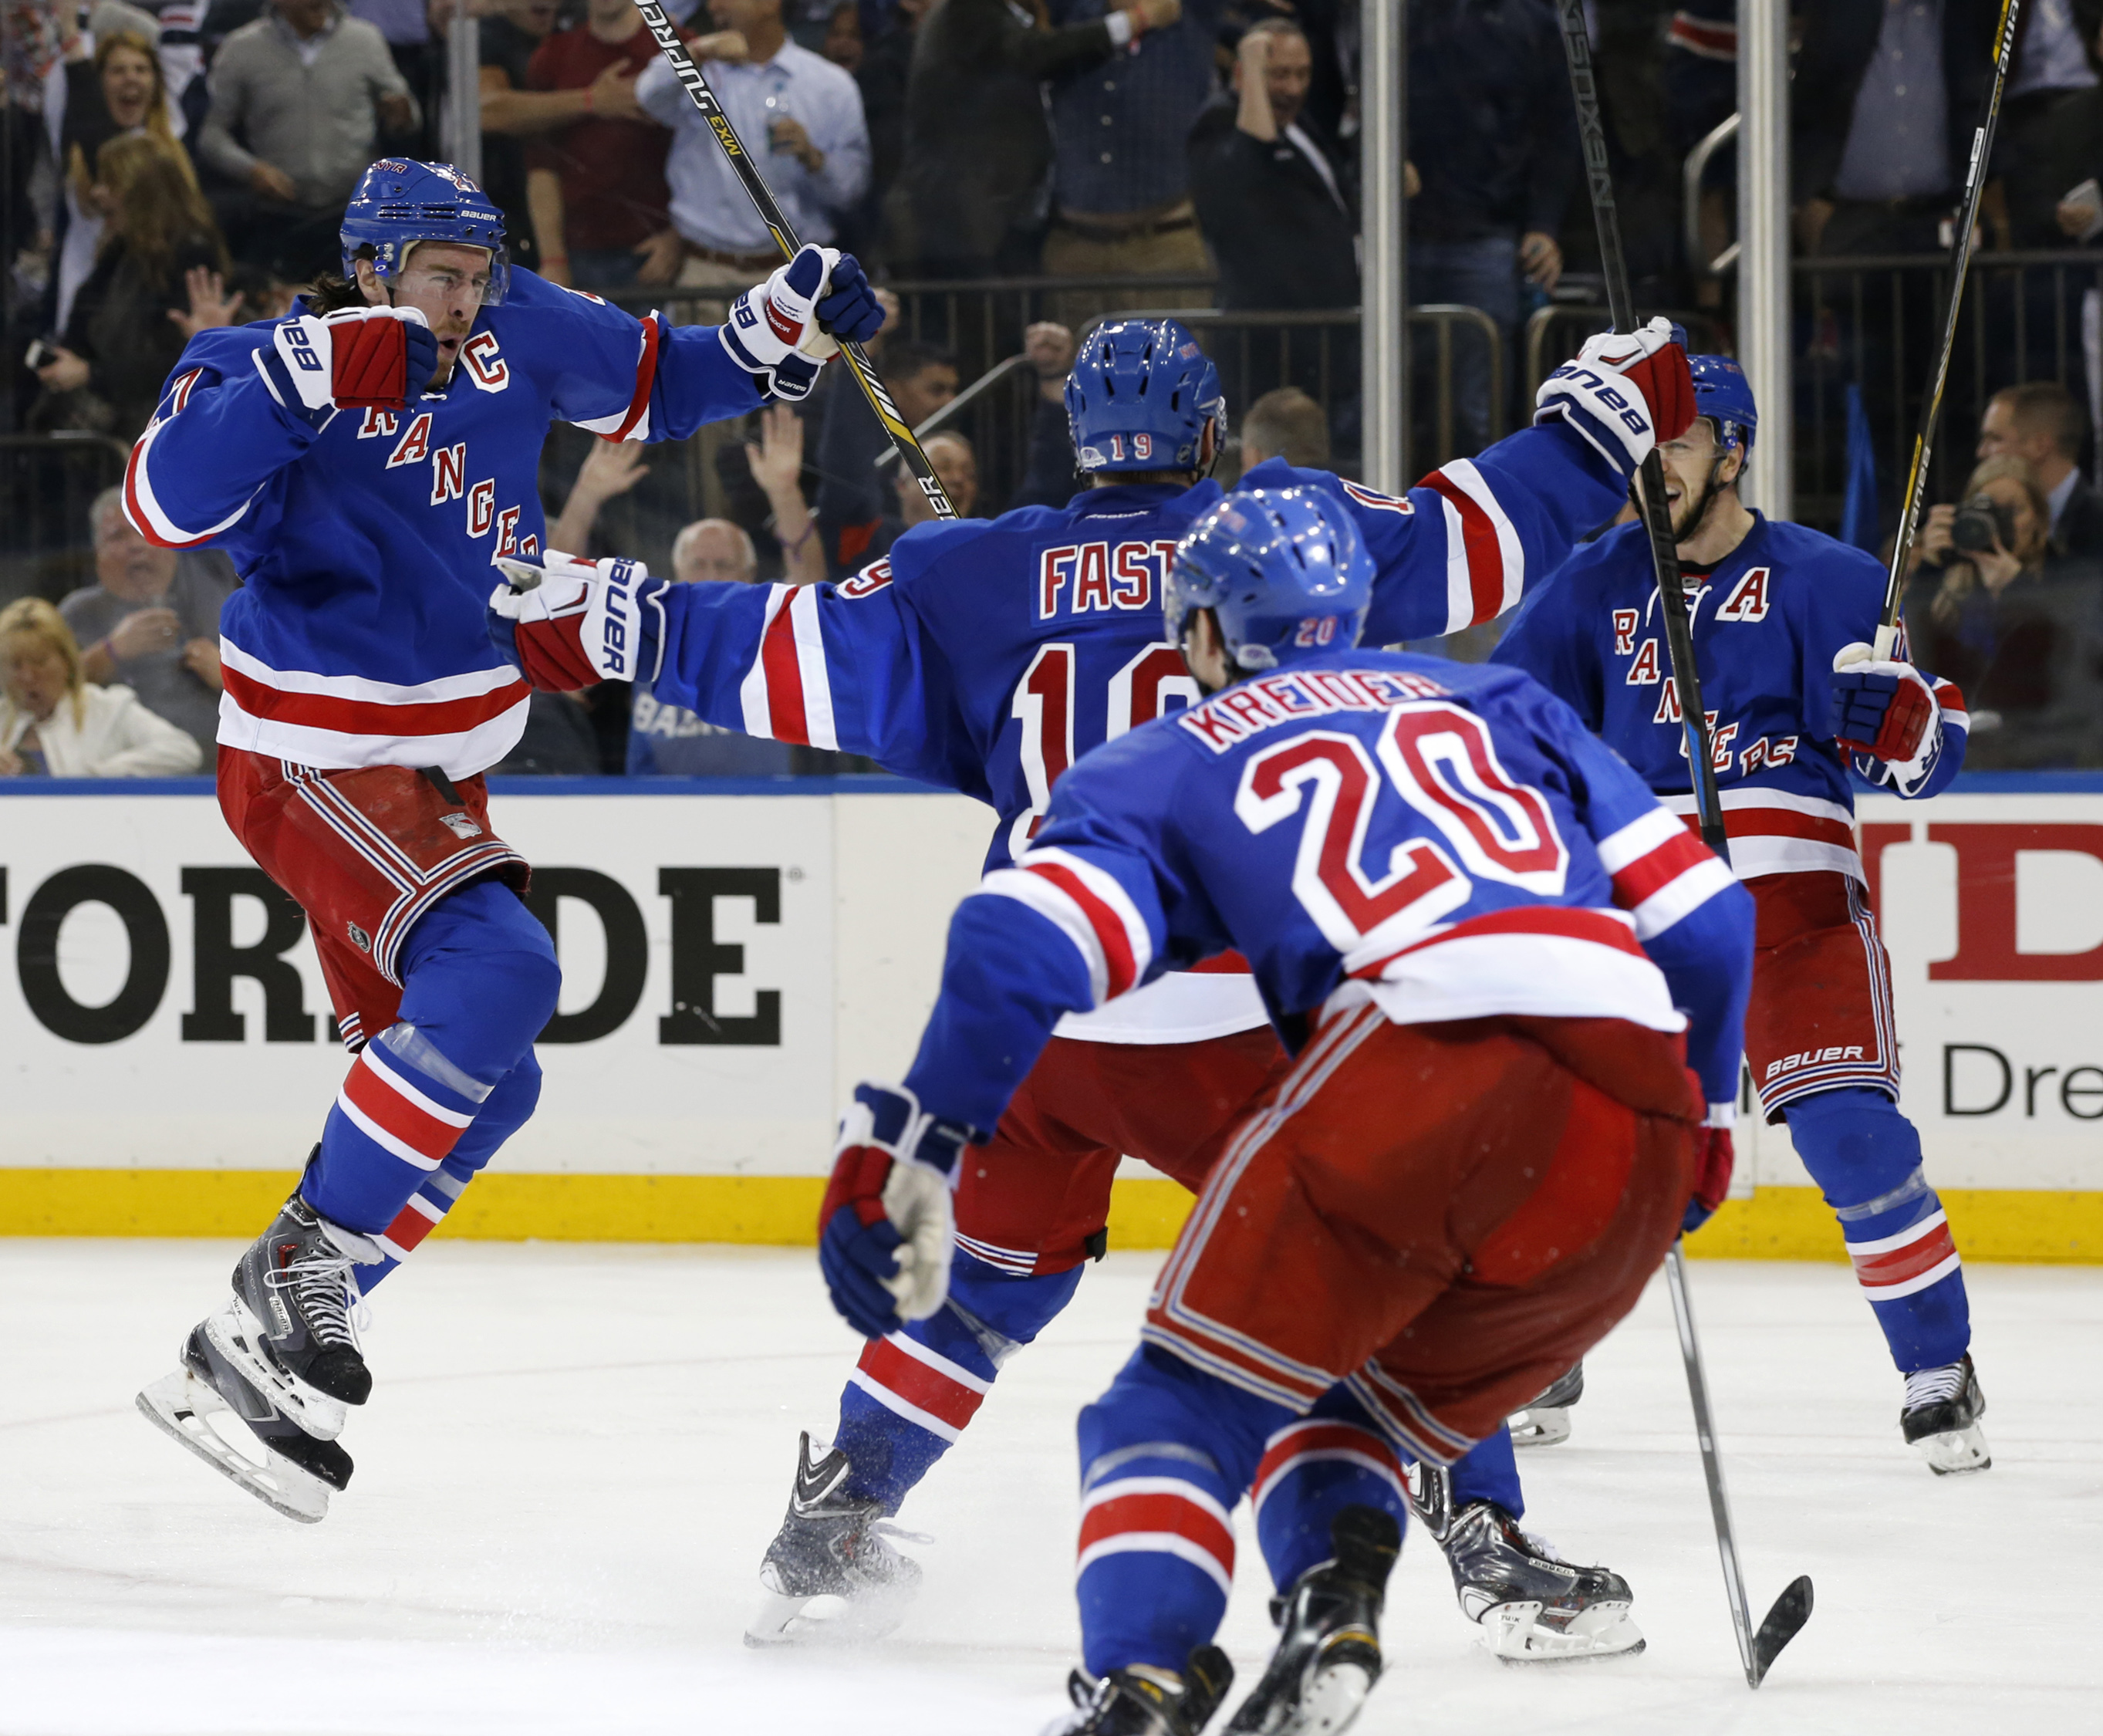 New York Rangers defenseman Ryan McDonagh, left, celebrates after scoring the winning goal in overtime during Game 5 in the second round of the NHL Stanley Cup hockey playoffs, Friday, May 8, 2015, in New York. The Rangers defeated the Capitals 2-1 to ext